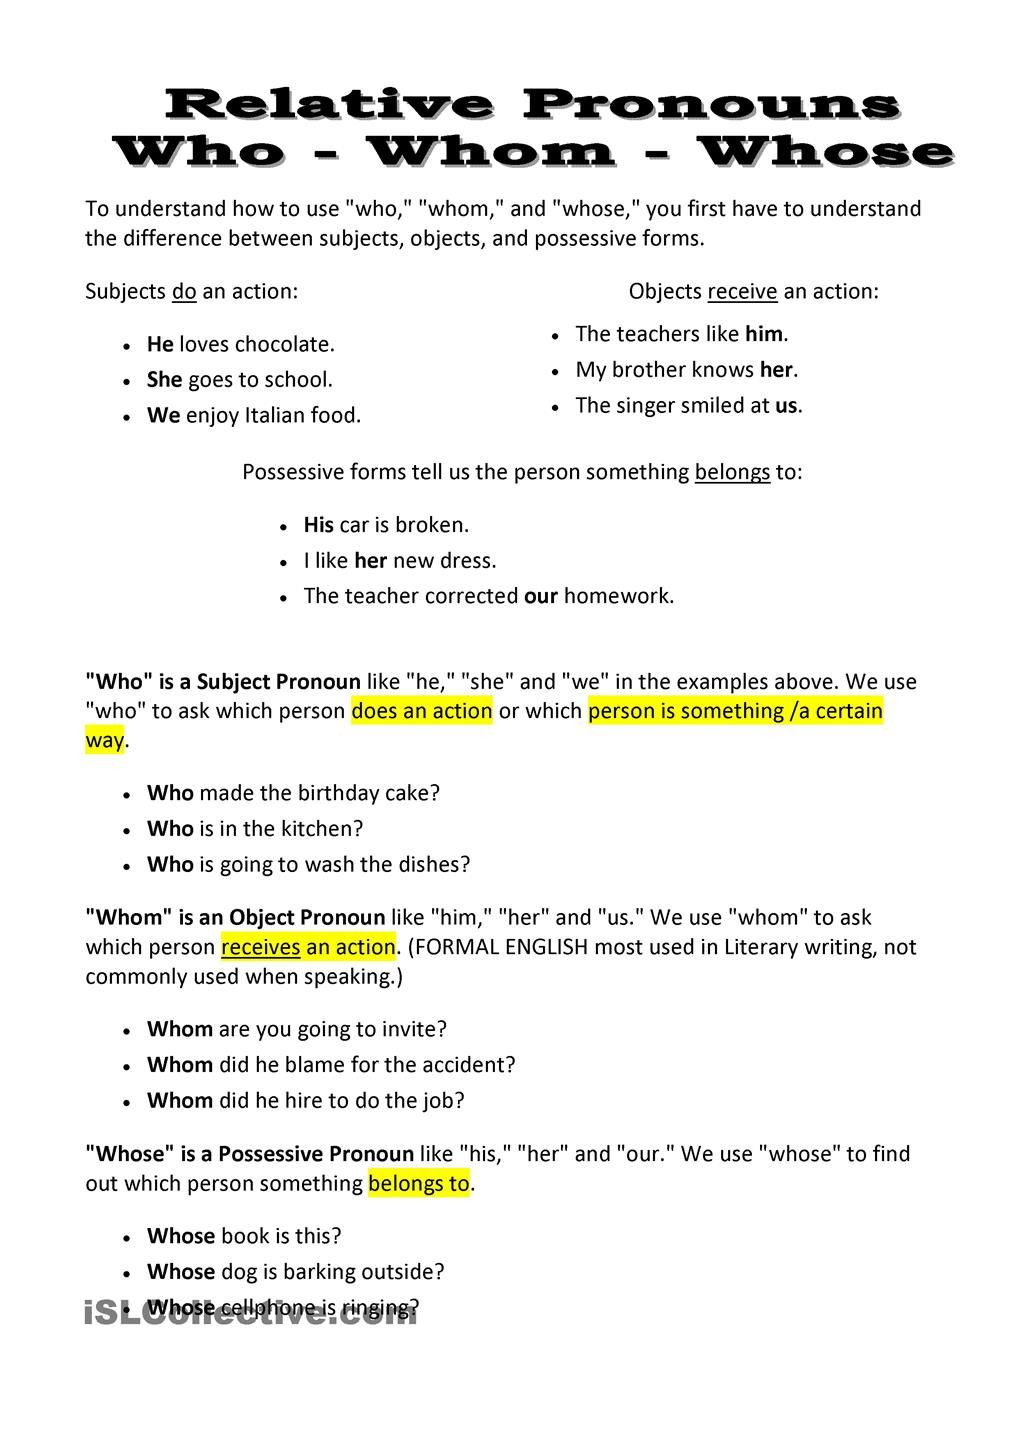 Relative Pronoun Worksheet 4th Grade Relative Pronouns who whom whose